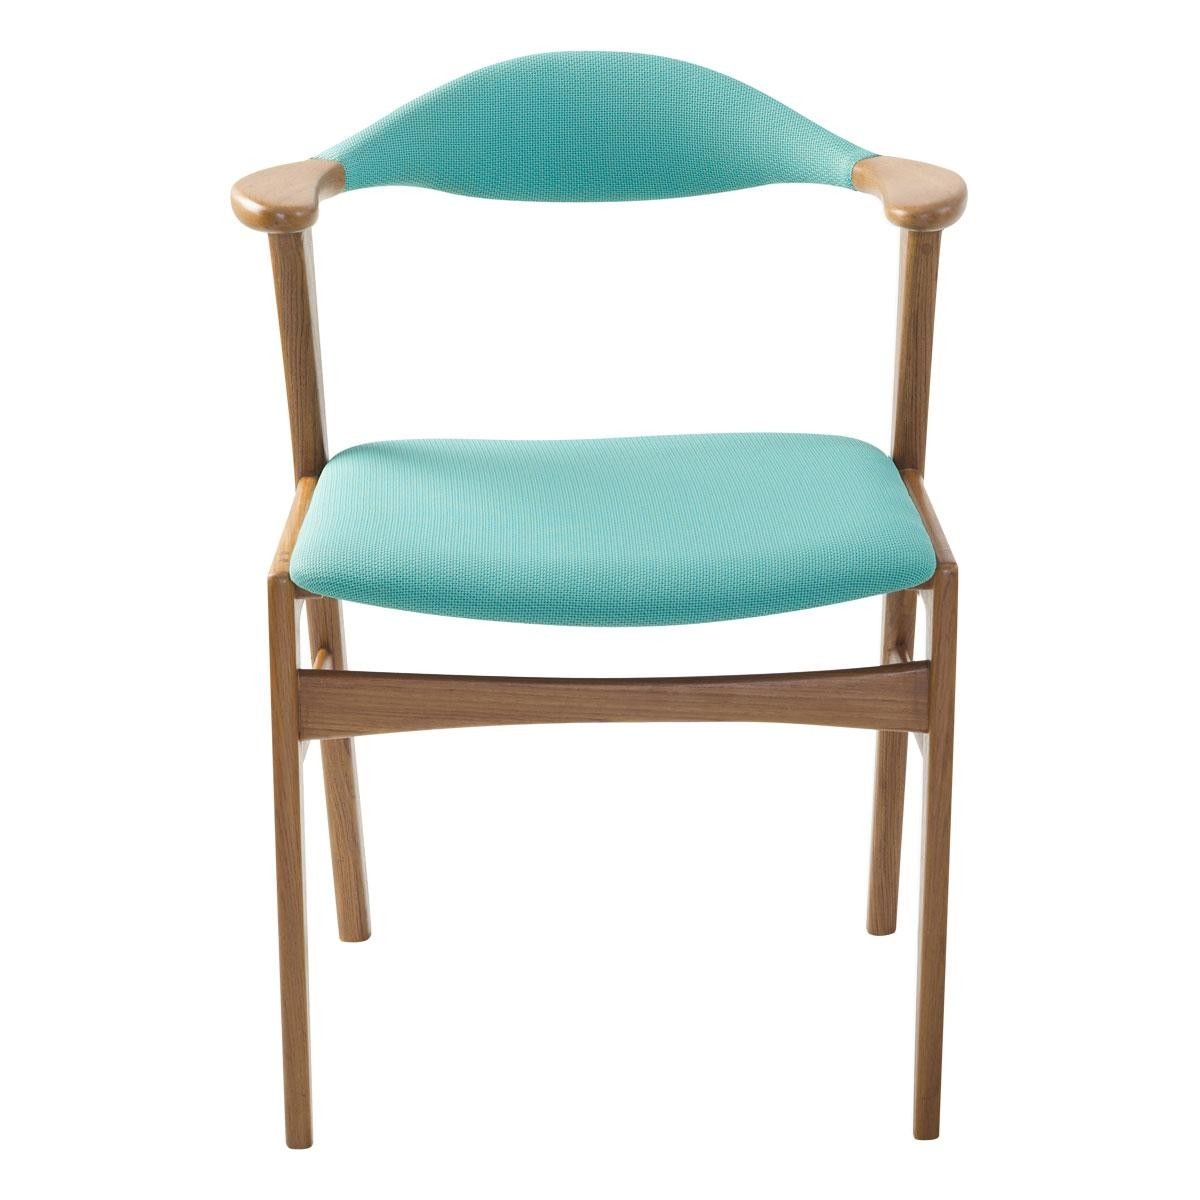 Chair, Outdoor Chairs, Furniture